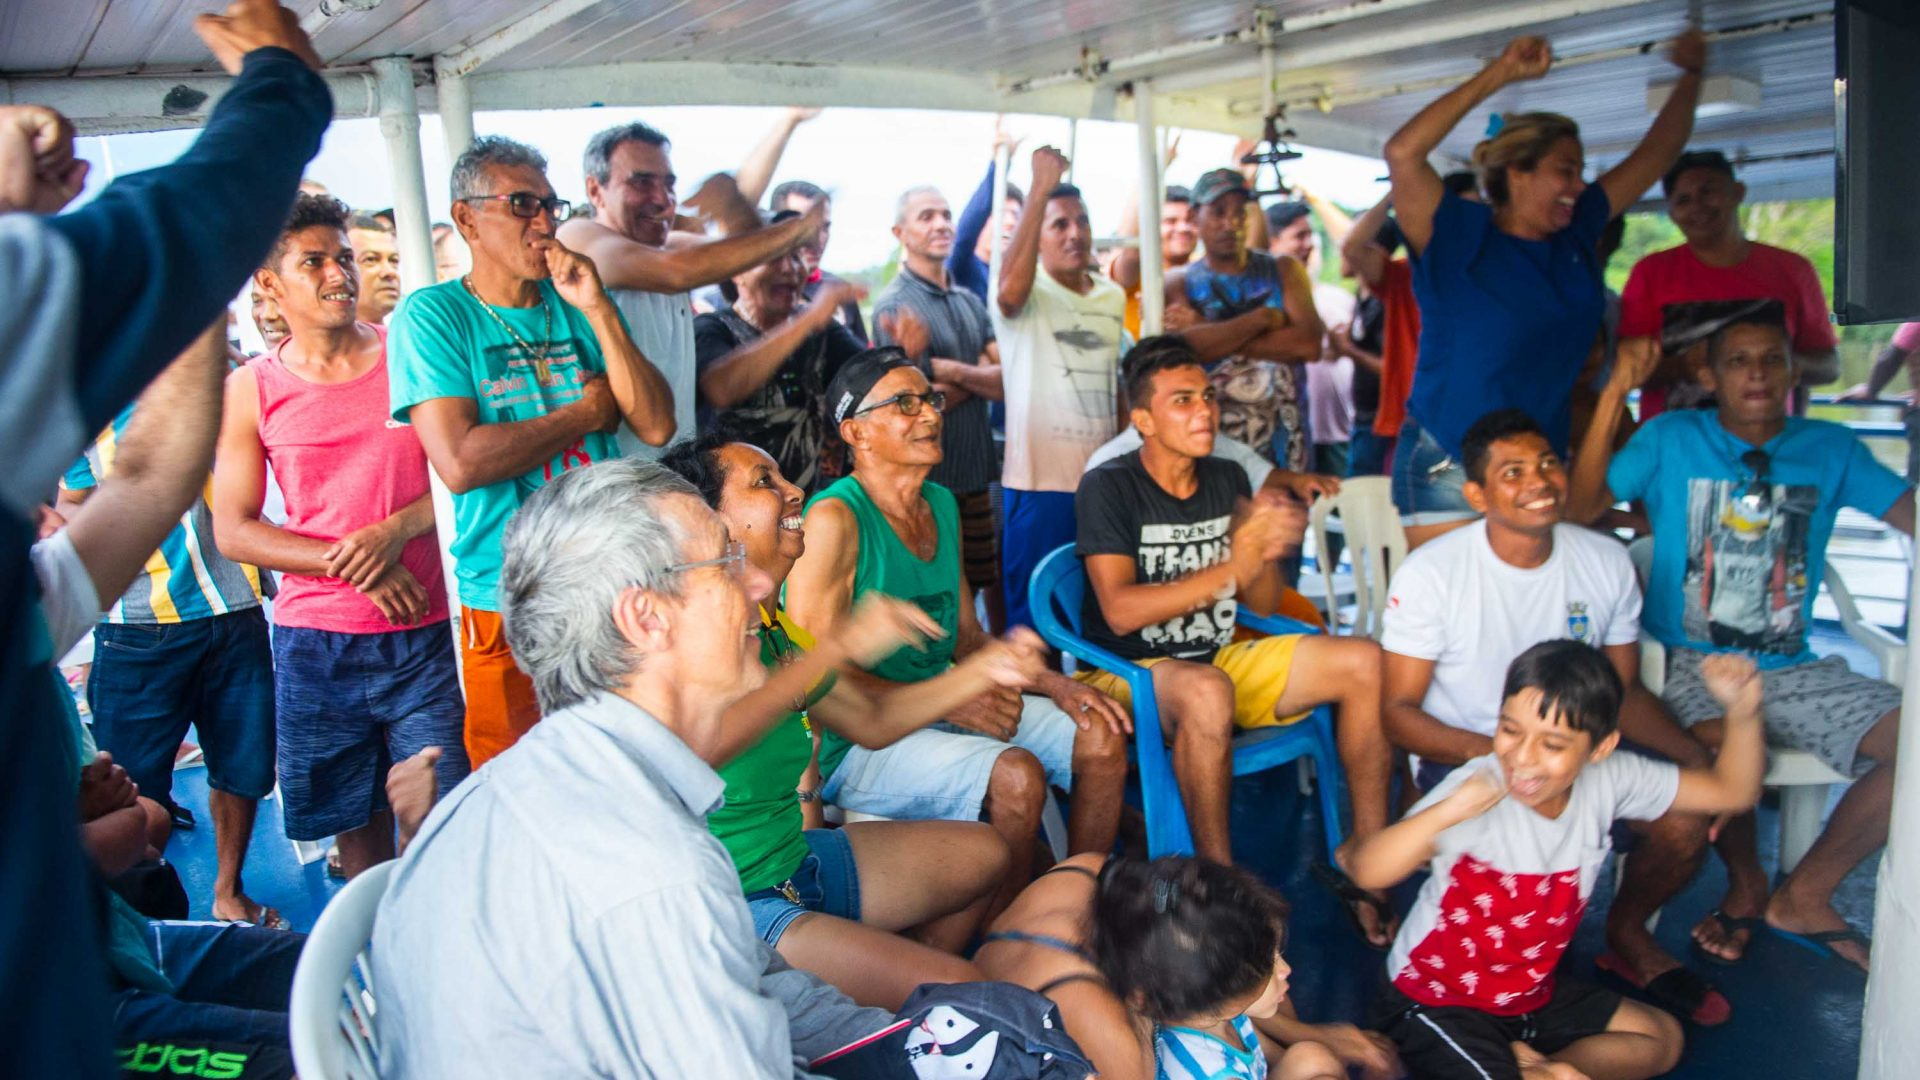 Cisne Branco riverboat passengers get rowdy while watching a soccer game on board.